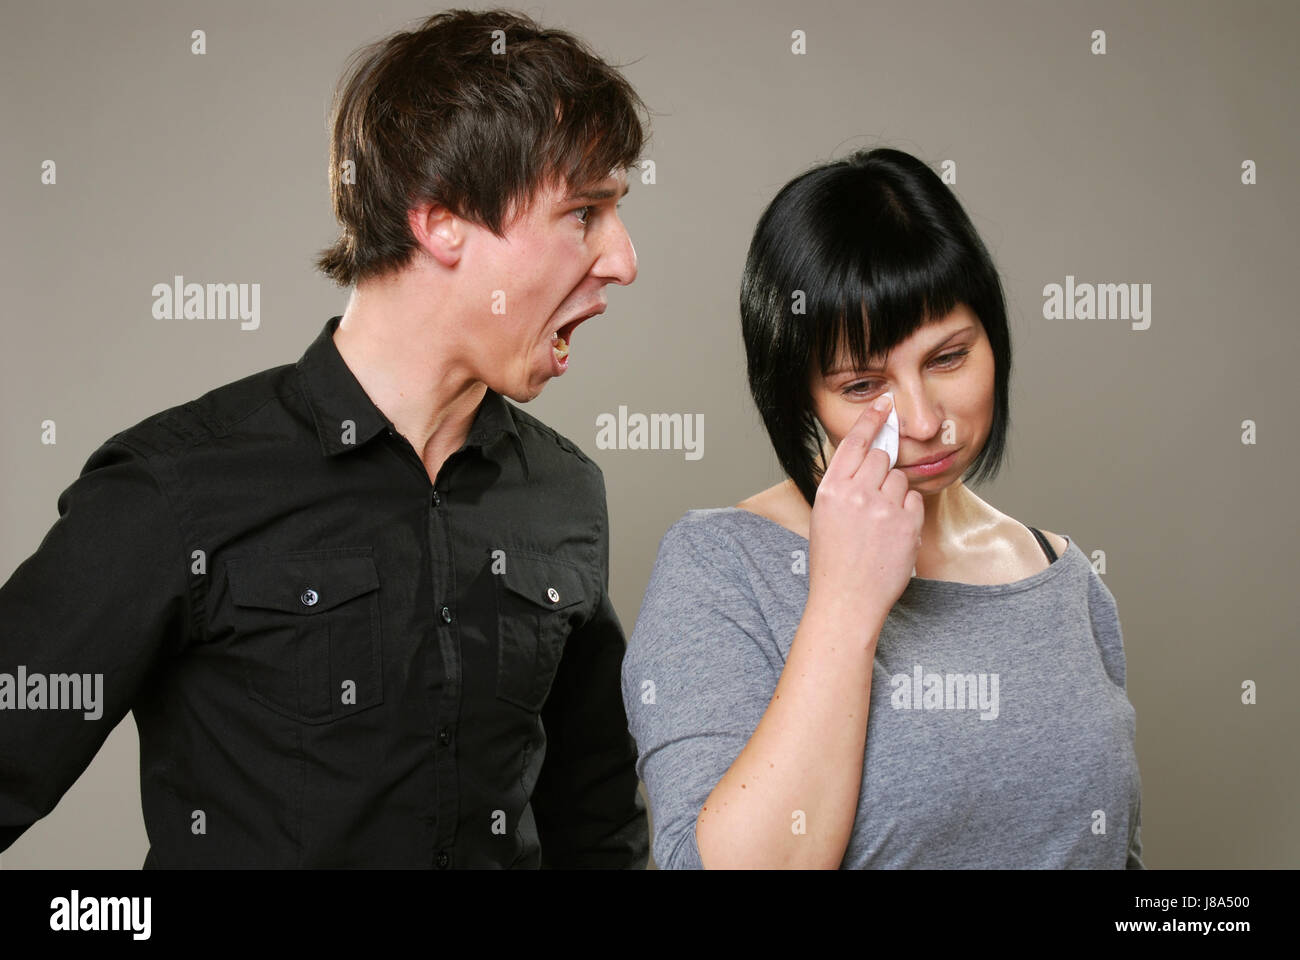 conflict, argue, problem, weep, cry, crying, weeper, weeping, love, in love, Stock Photo